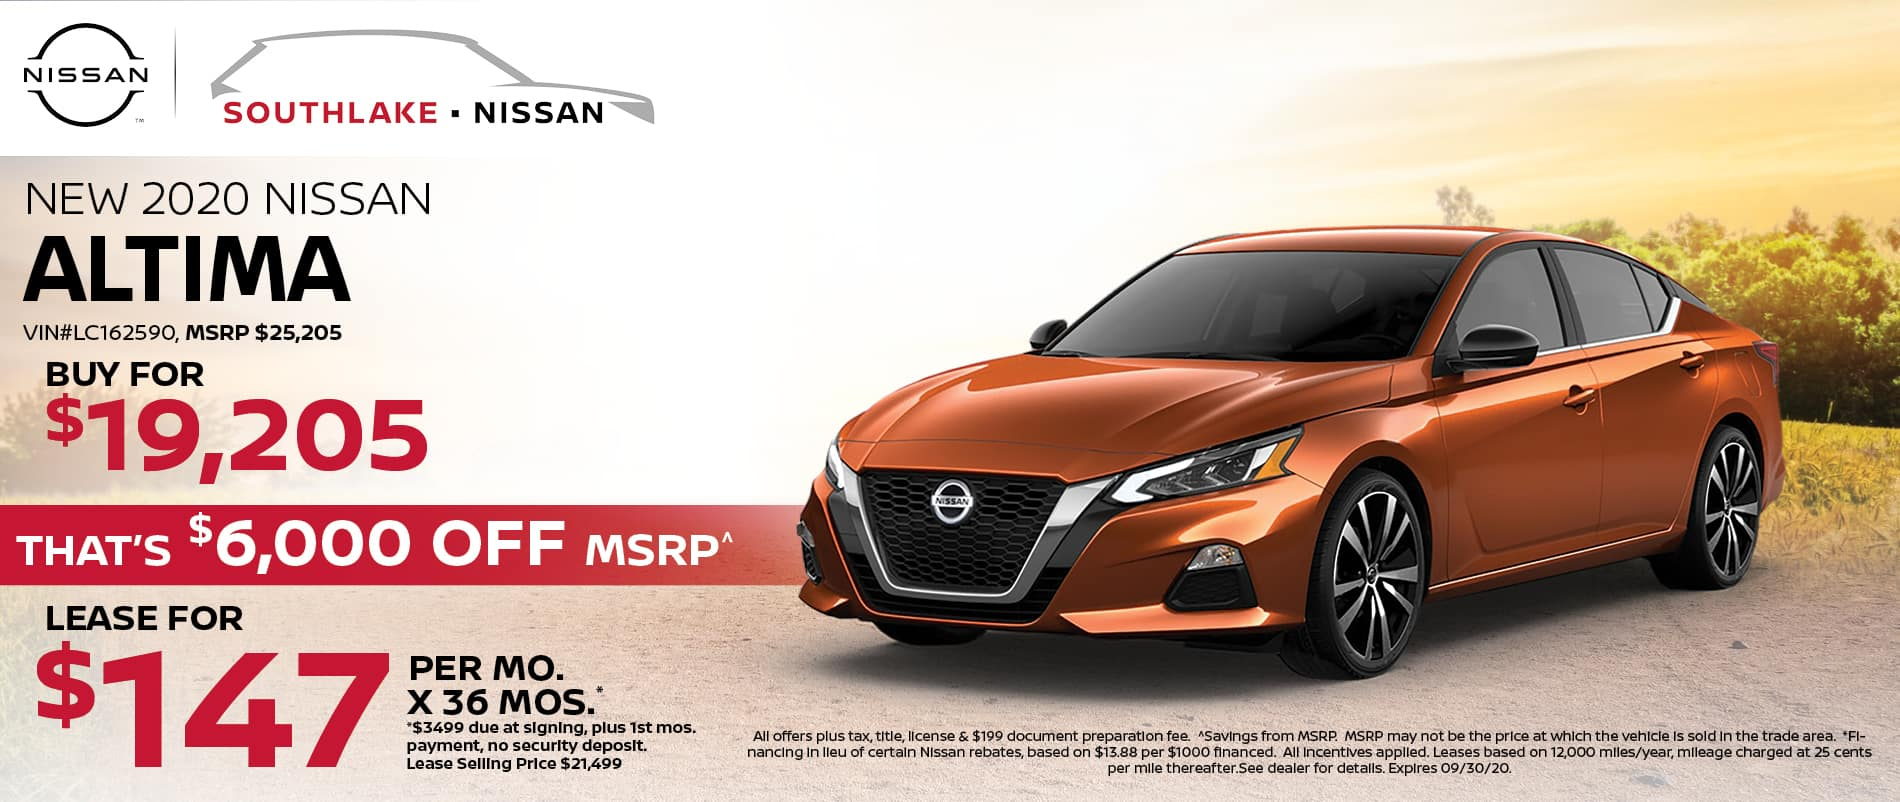 2020 Nissan Altima Finance or Lease Offer | Merriville, IN